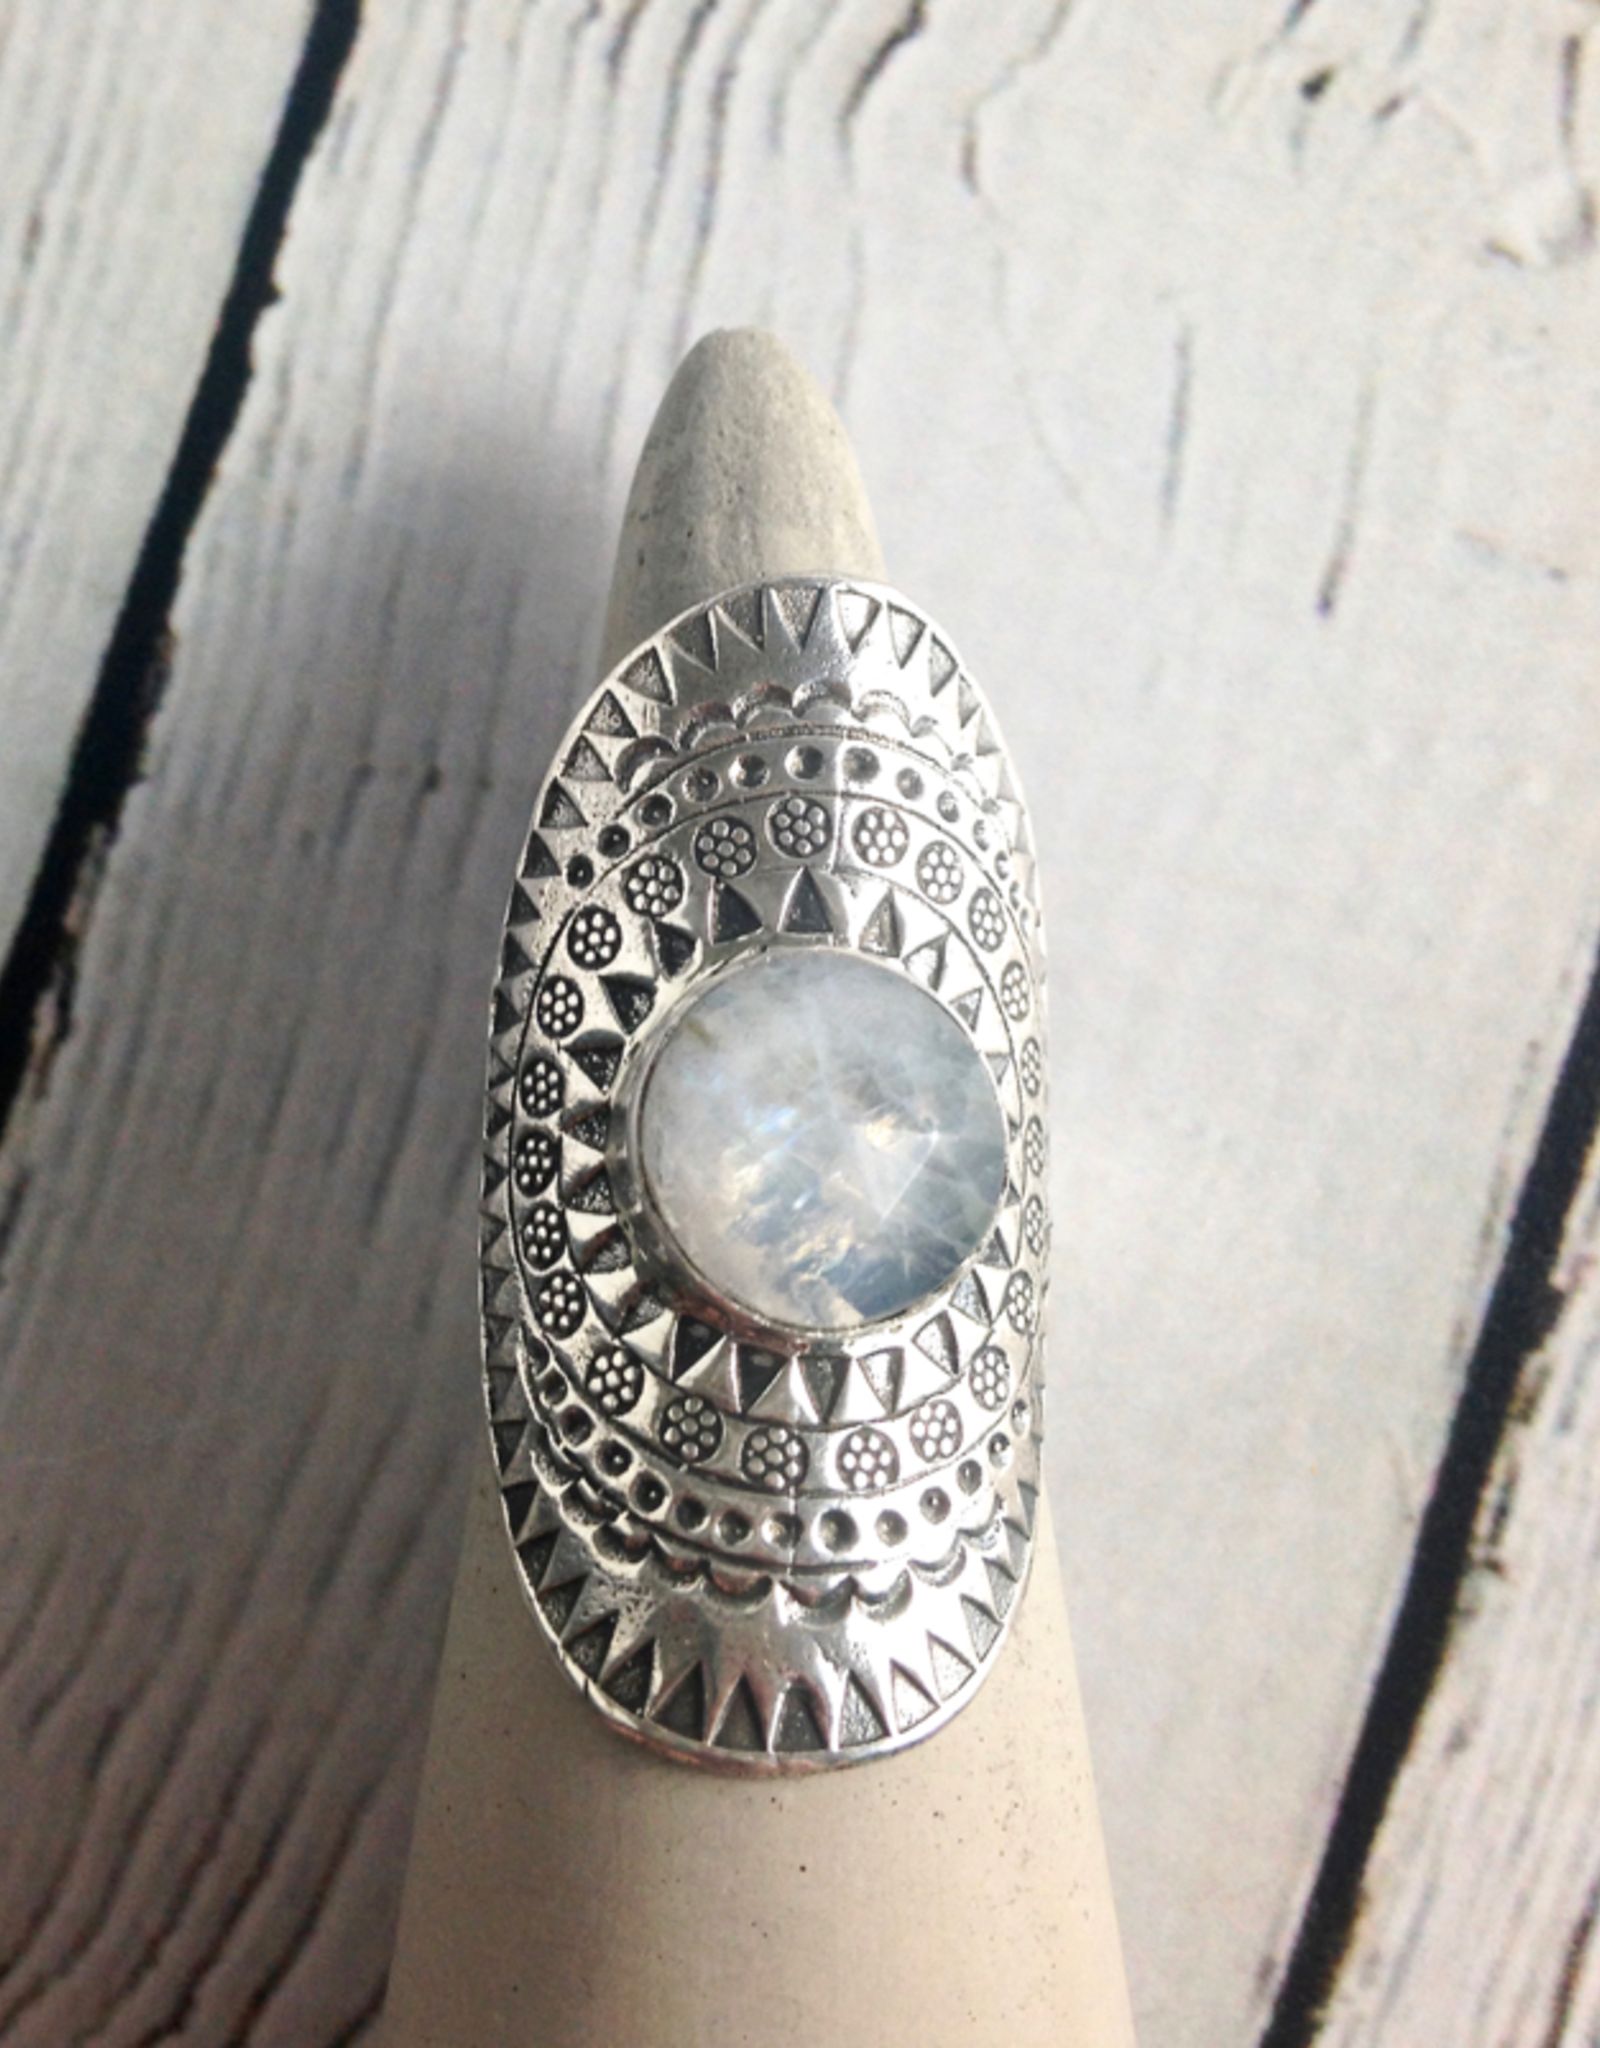 TigerMtn hilltribe Stamped Silver Ring with Round Faceted Moonstone, Size 9